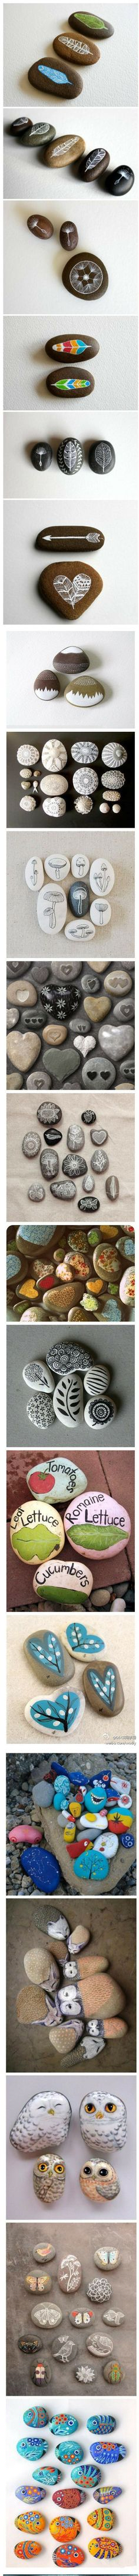 Great pebble art designs for decorations